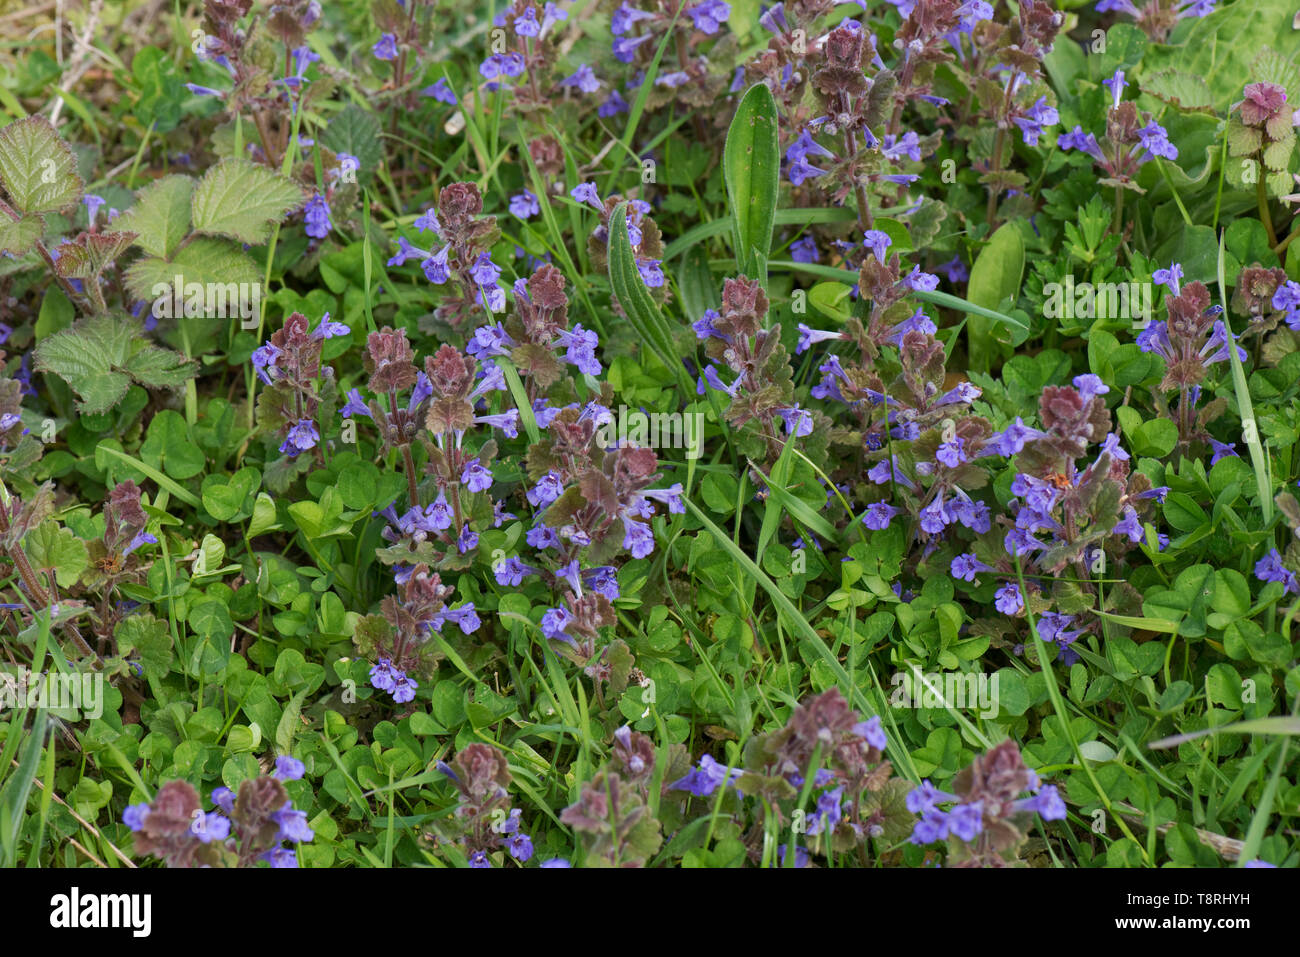 Ground-ivy (Glechoma hederacea) blue flowers on prostrate evergreen creeper, Berkshire, April - Stock Image